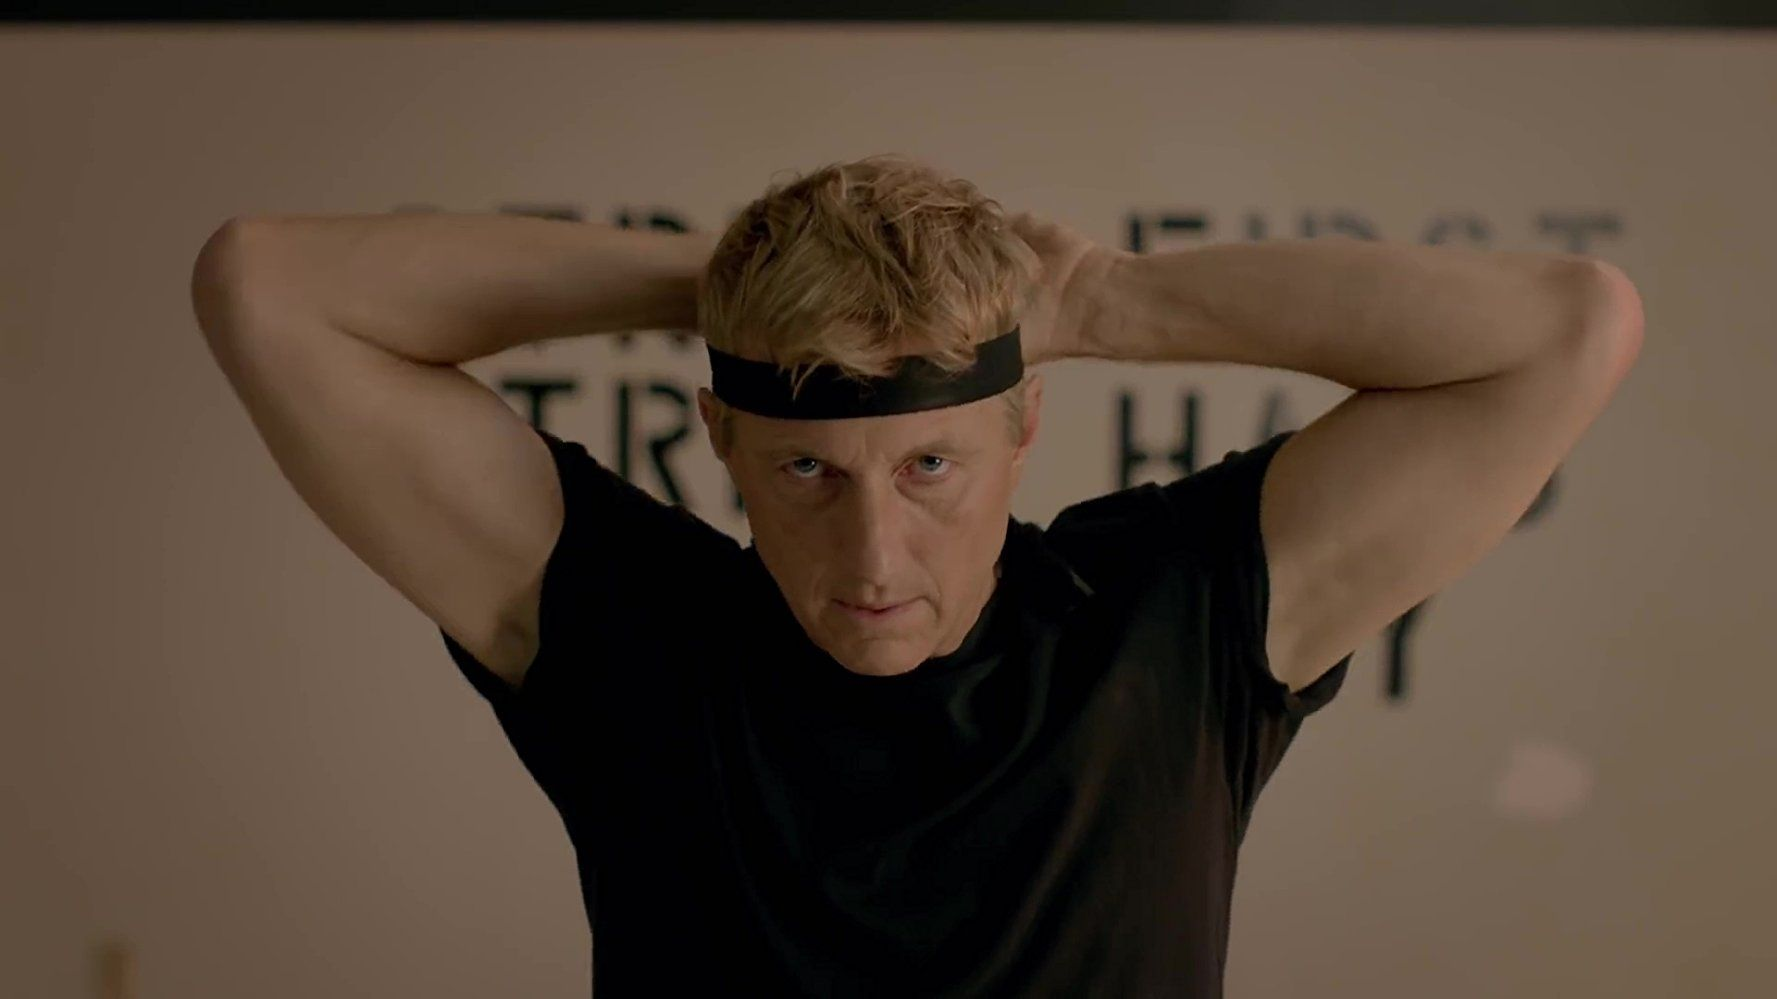 'Karate Kid' Sequel 'Cobra Kai' Renewed for Season 2 at YouTube